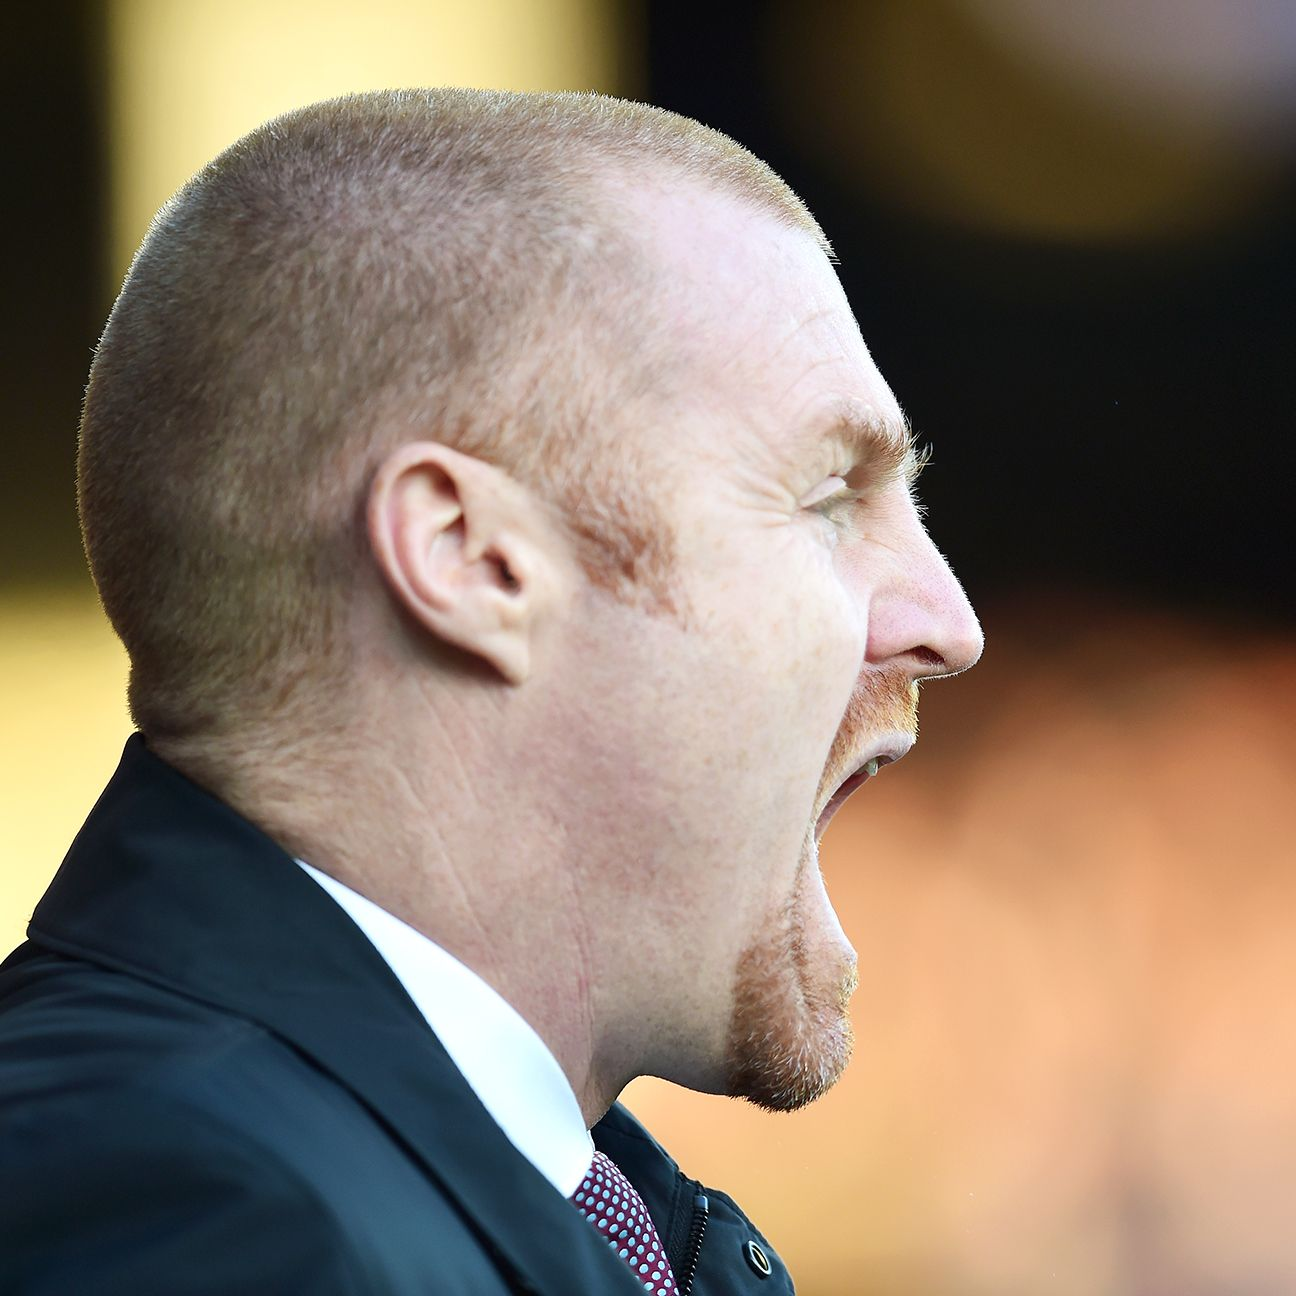 Burnley boss Sean Dyche hopes to see another solid performance from his team at Turf Moor.